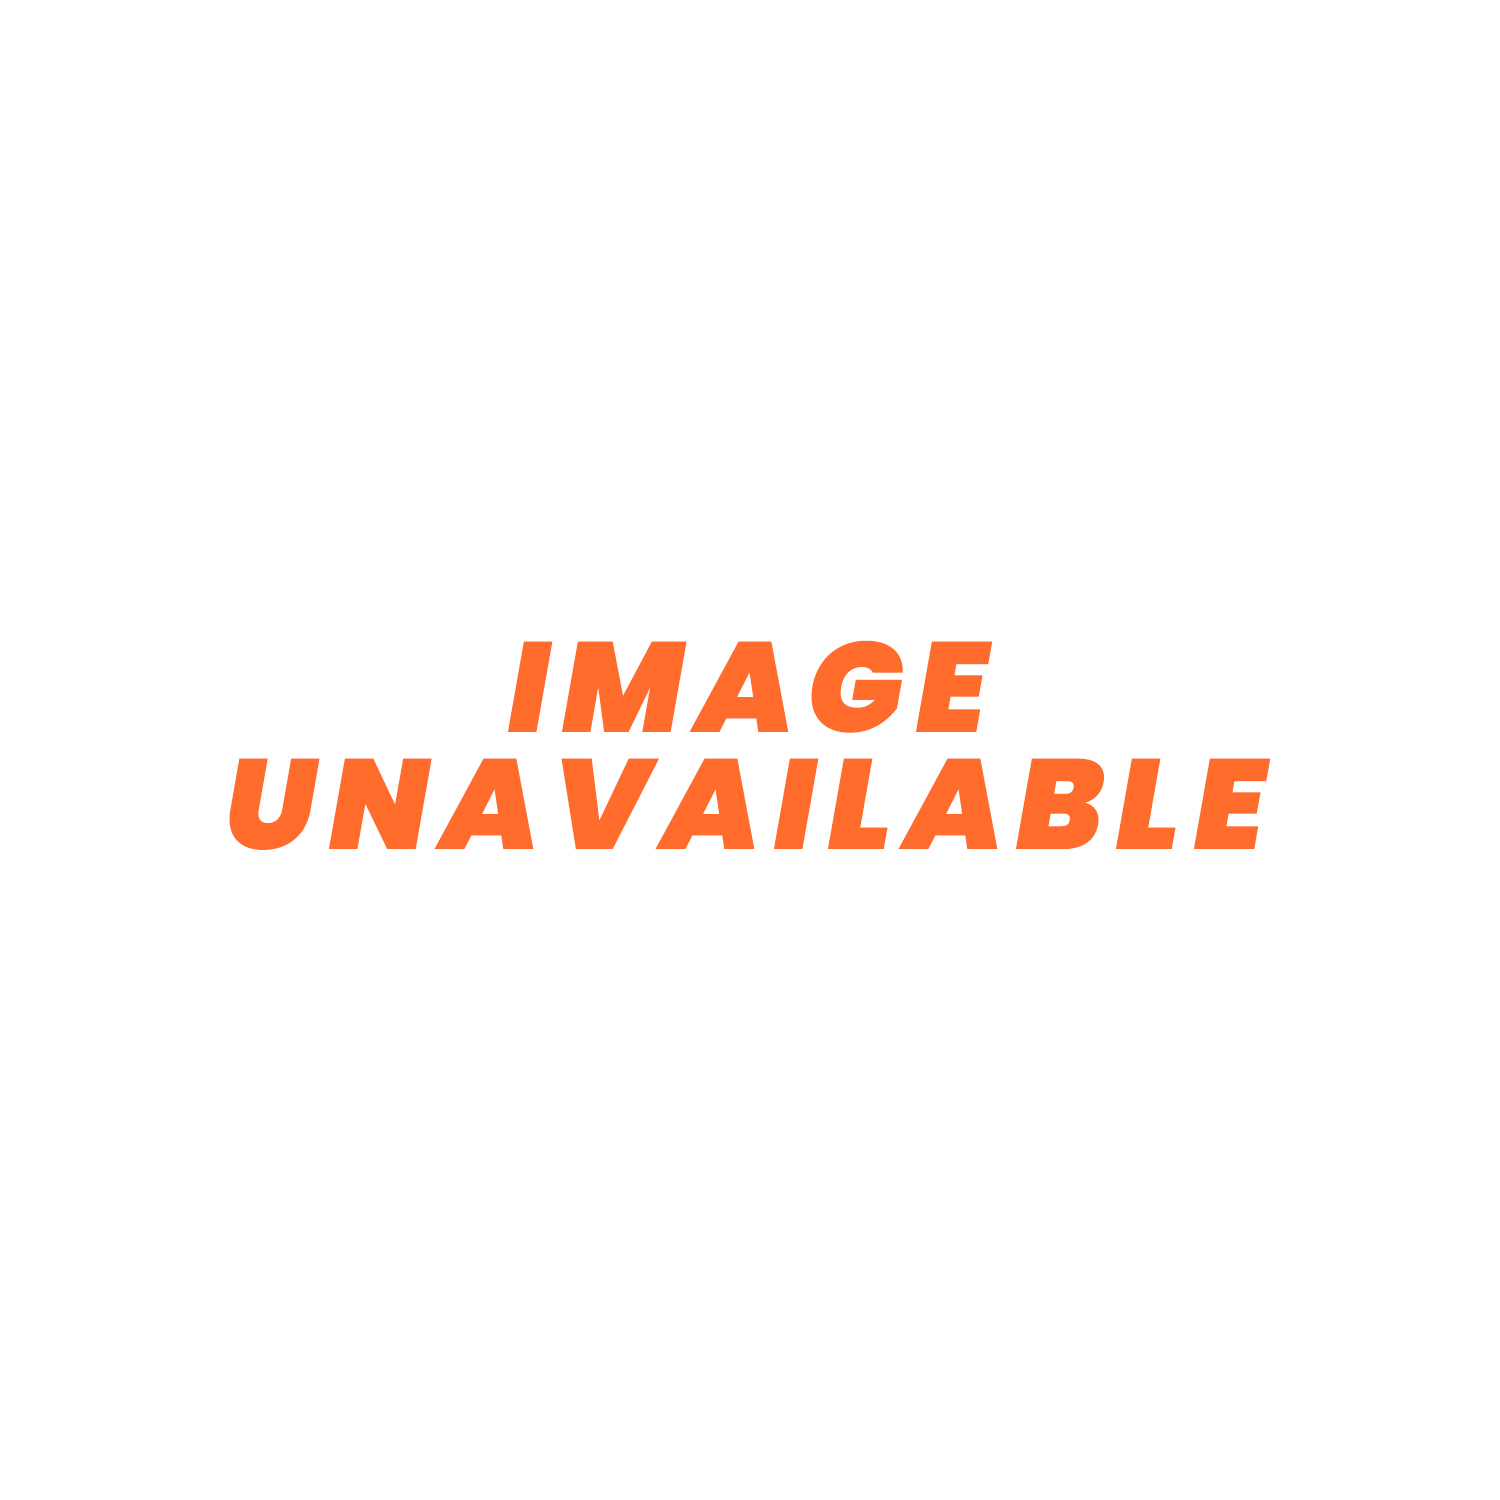 "SPAL Radiator Fan - 12.0"" (305mm) Pull VA10-AP50/C-61A 1221cfm"